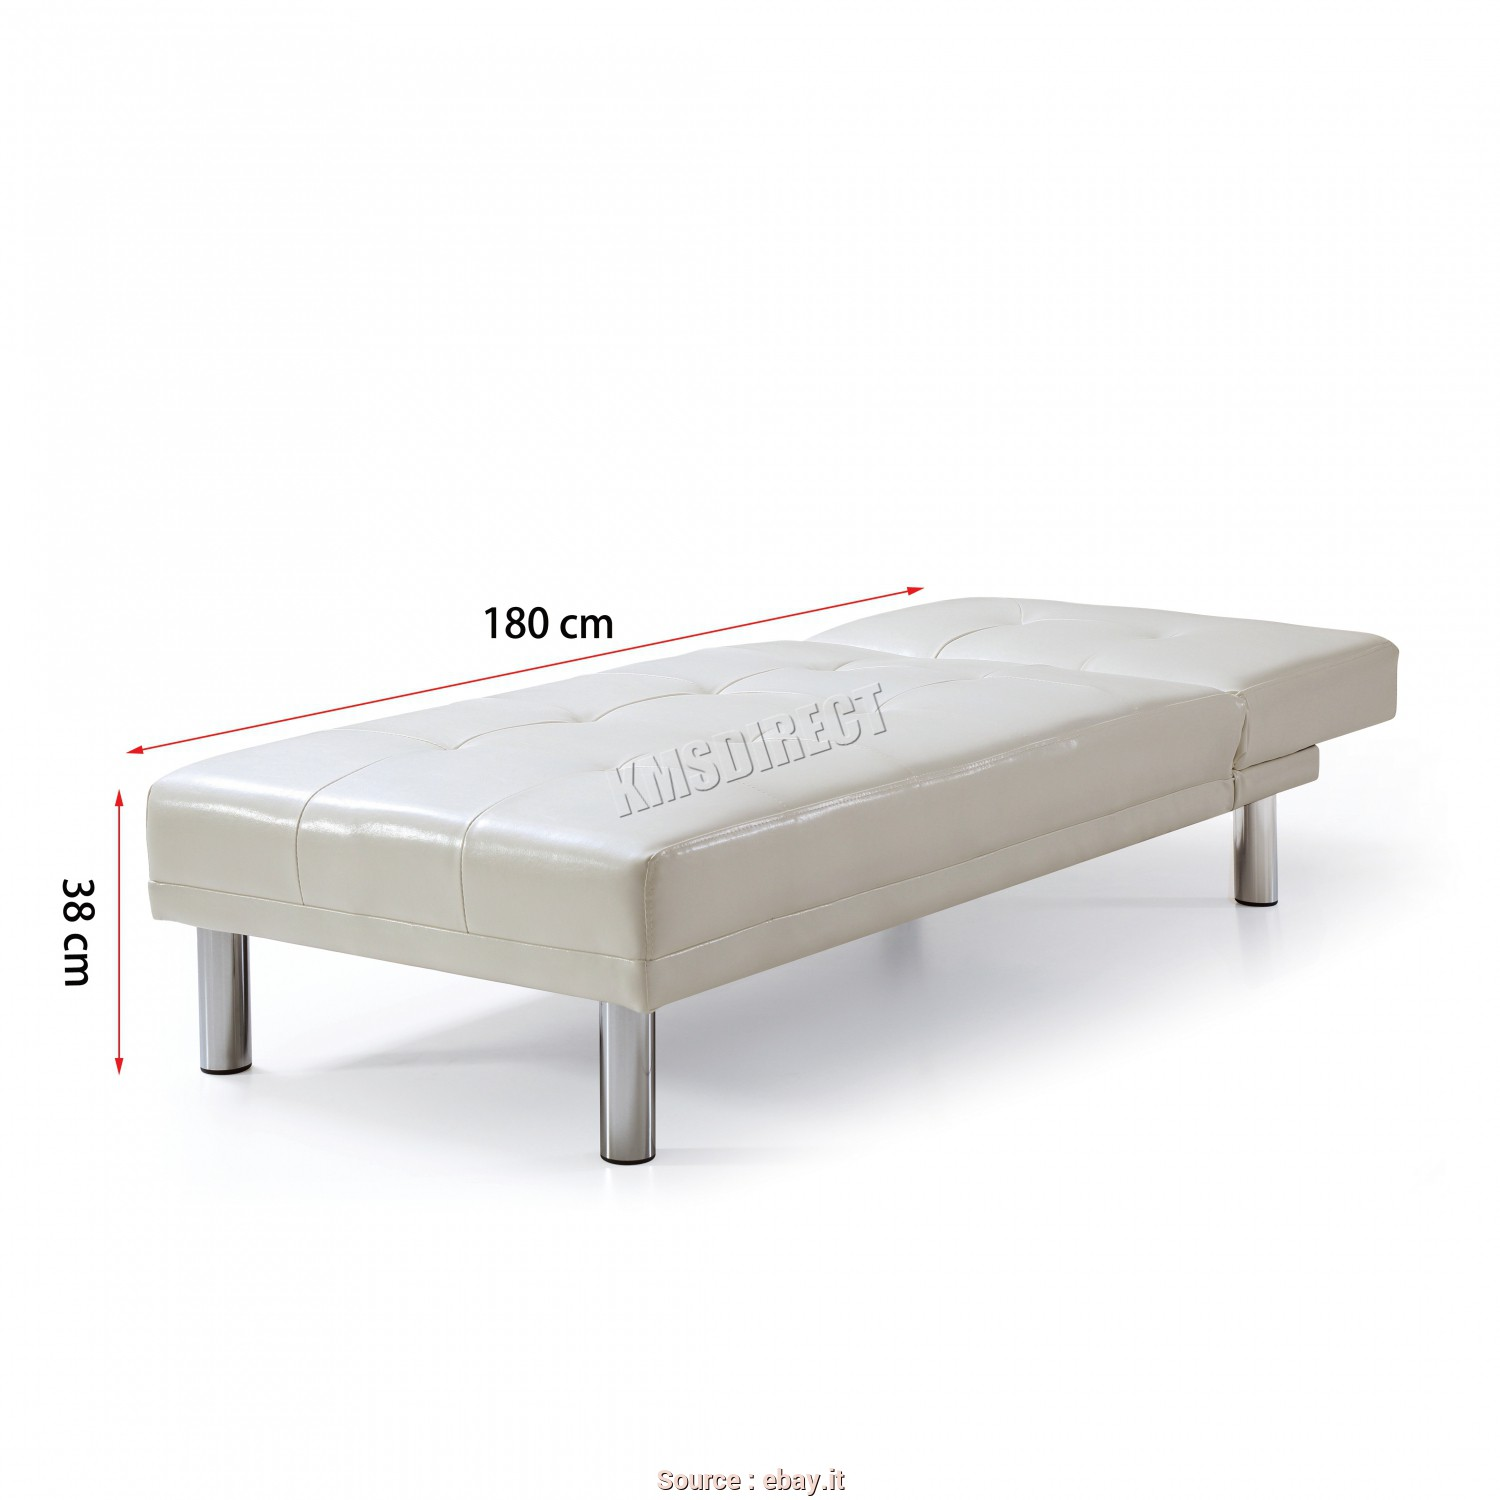 Chaise Longue Letto Singolo.Divano Chaise Longue Cm Magnifico Buy Sofa Formerin Contemporary